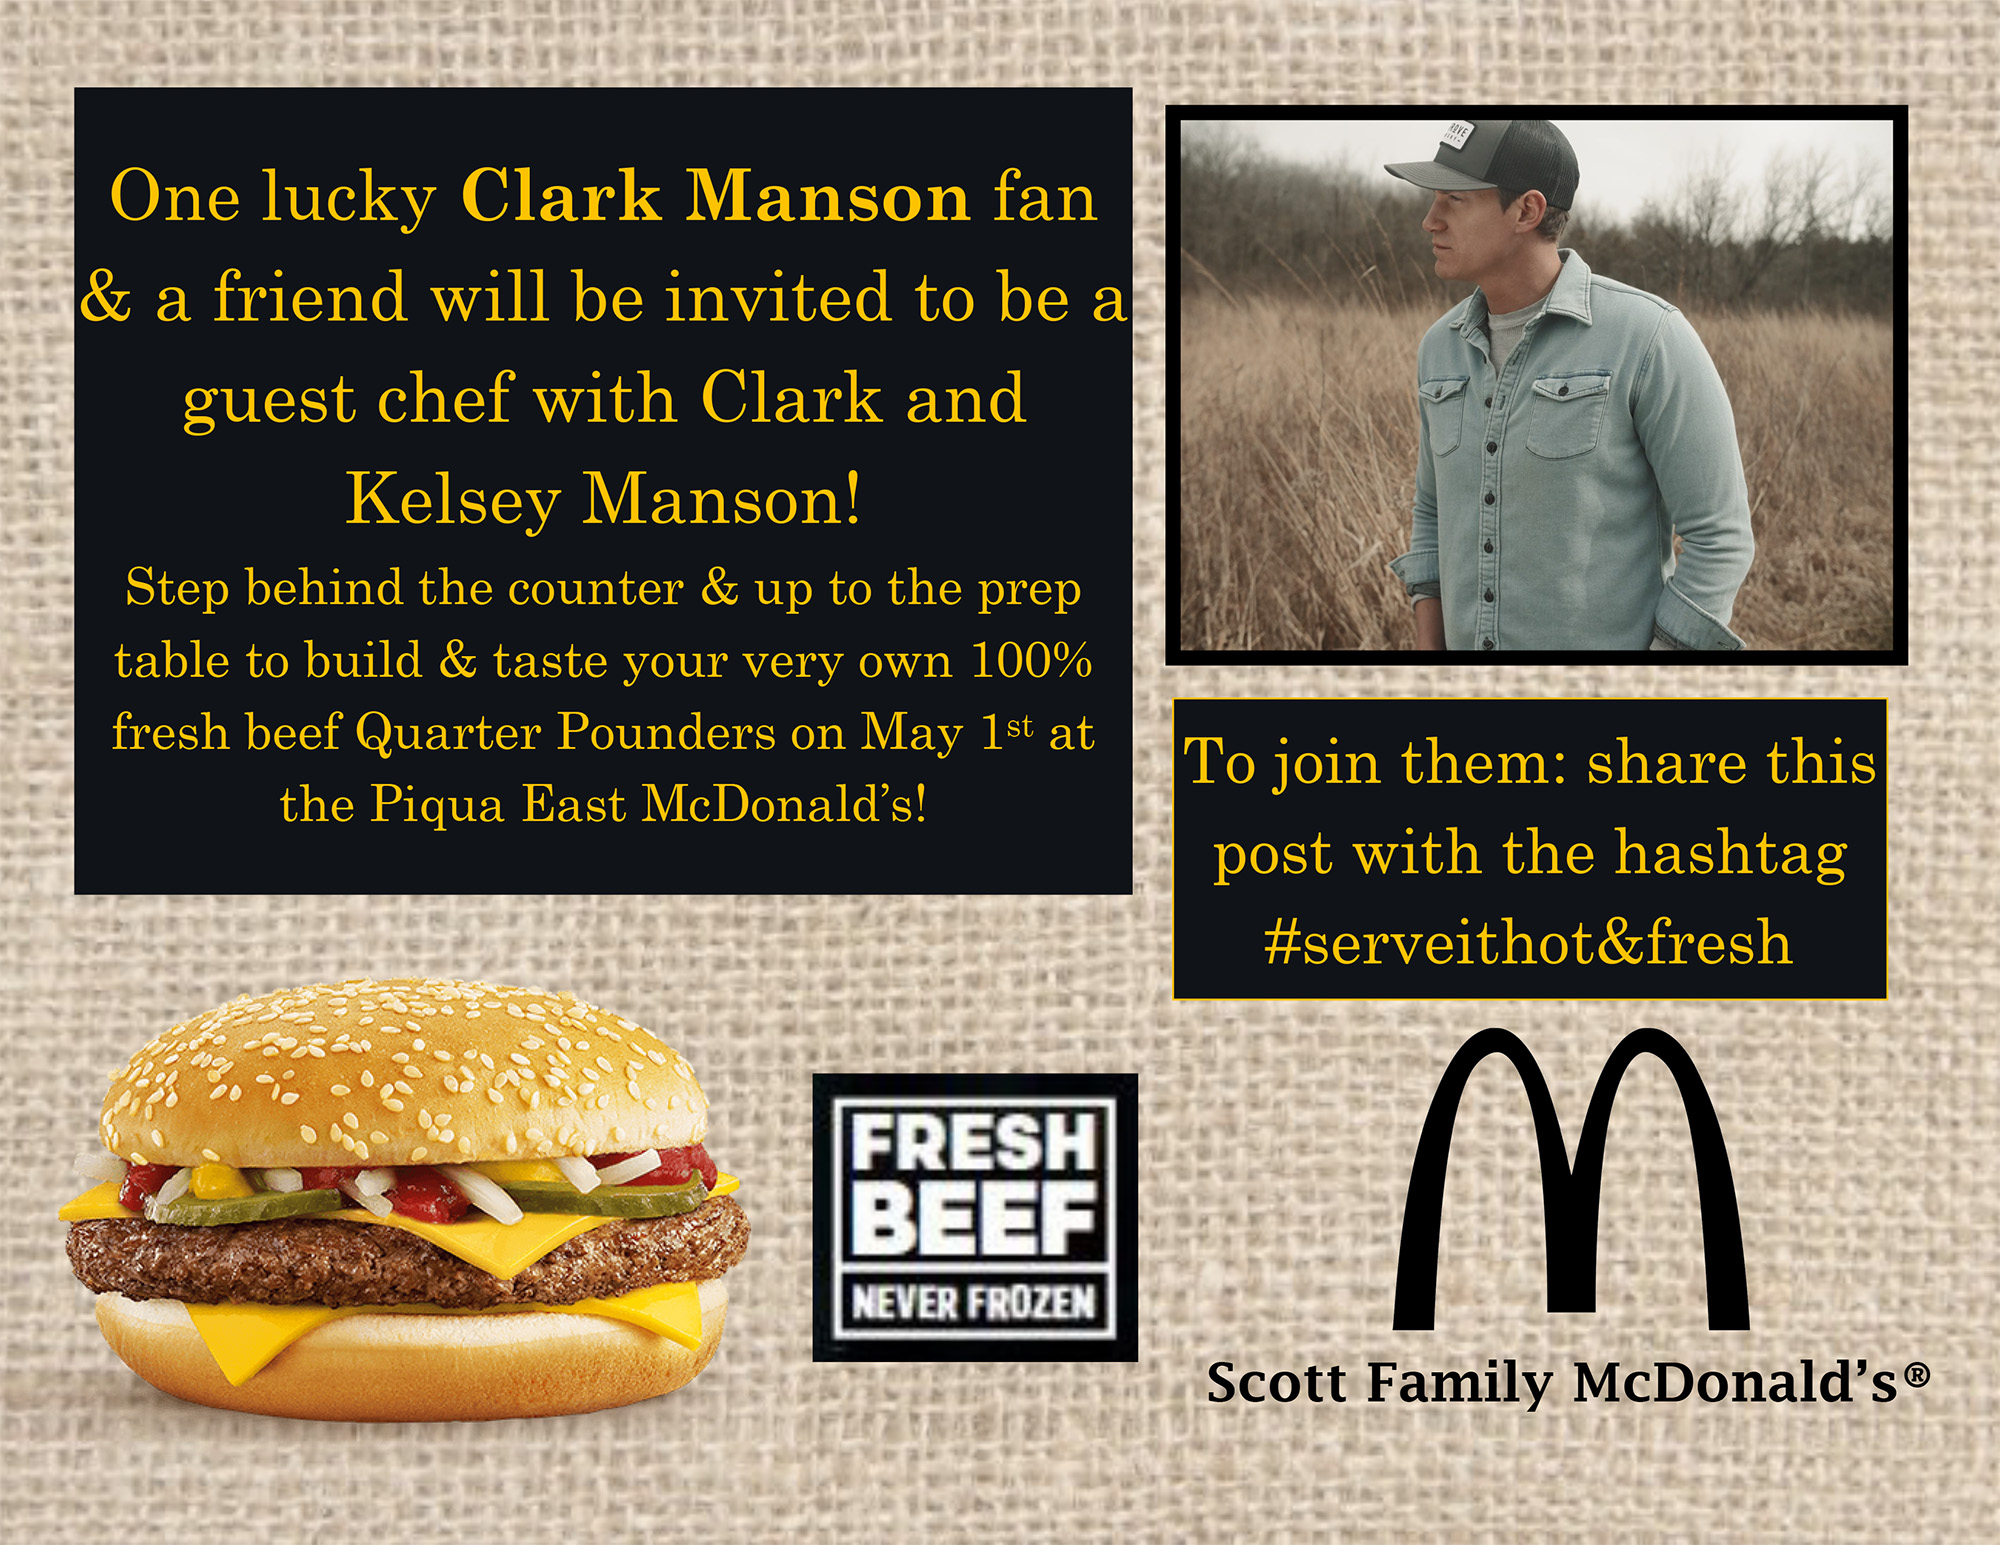 Join Clark Manson as a guest chef at Scott Family McDonald's on May 1st!